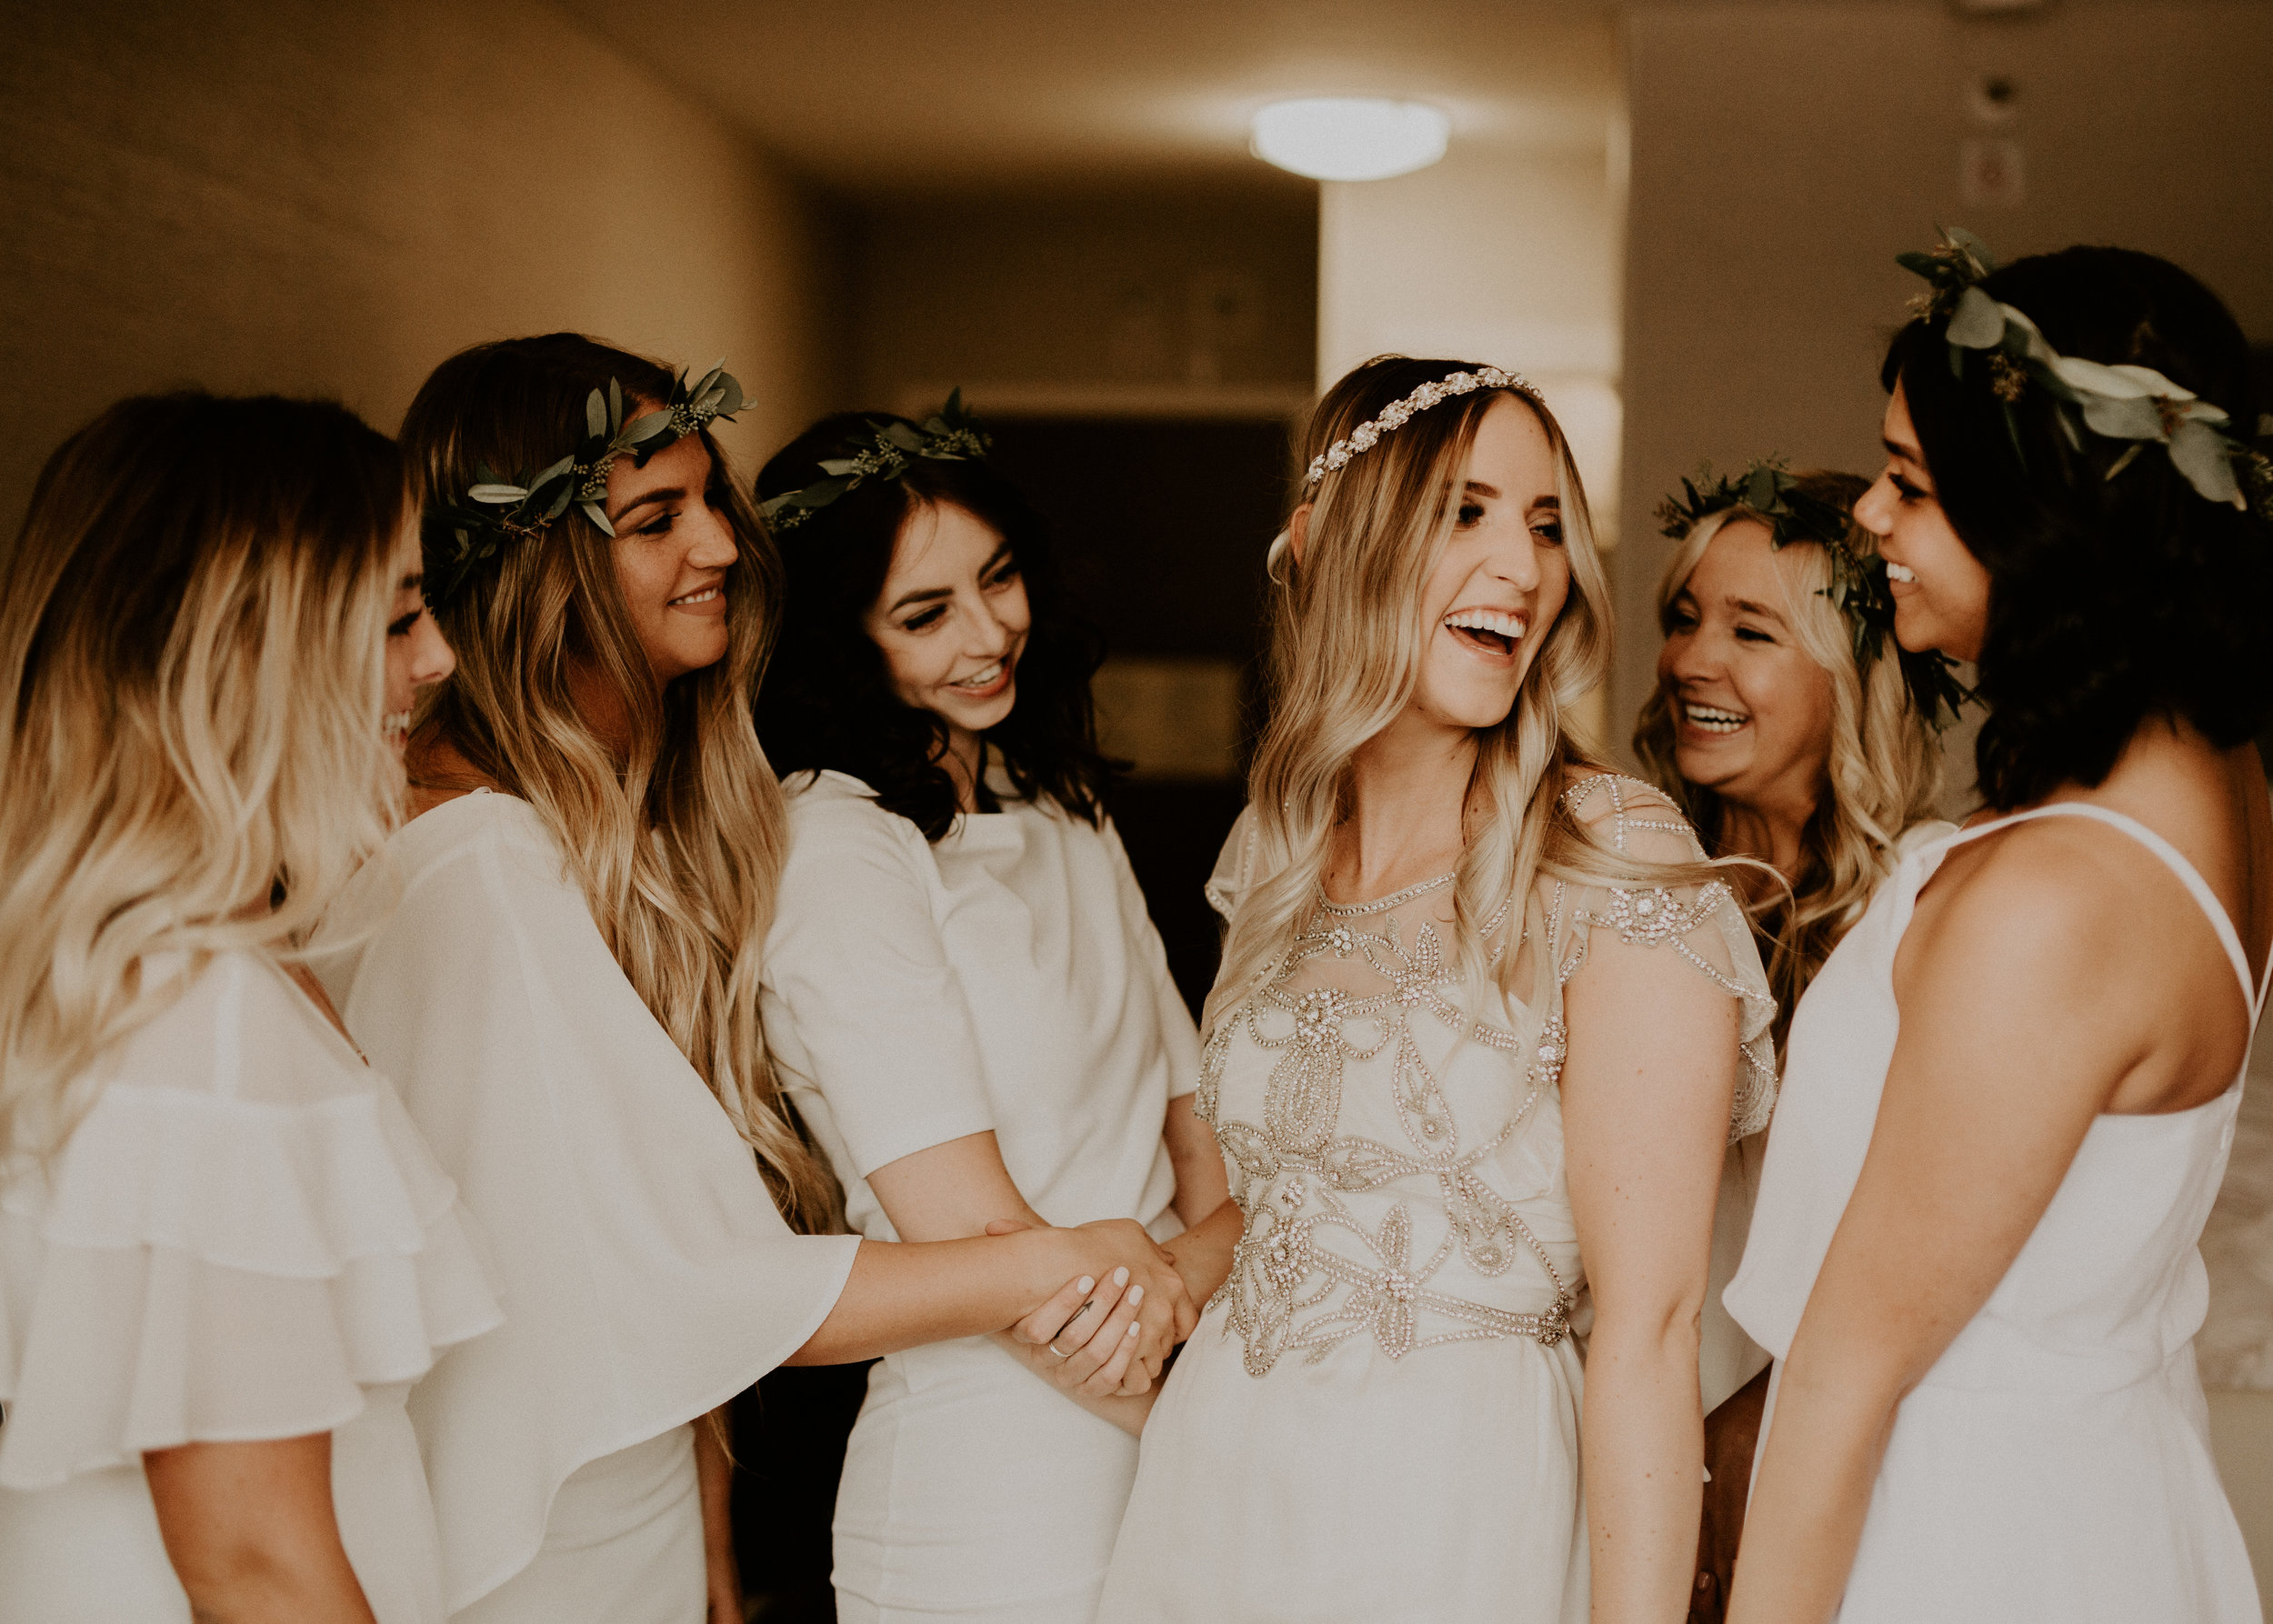 - 4. My fourth tip is to DELEGATE. Give your bridesmaids tasks to be in charge of on your special day so you can truly enjoy it! Have people help set up the decor so you don't have to worry about that stuff. Seems super simple but really, use your bridal party to your advantage!!